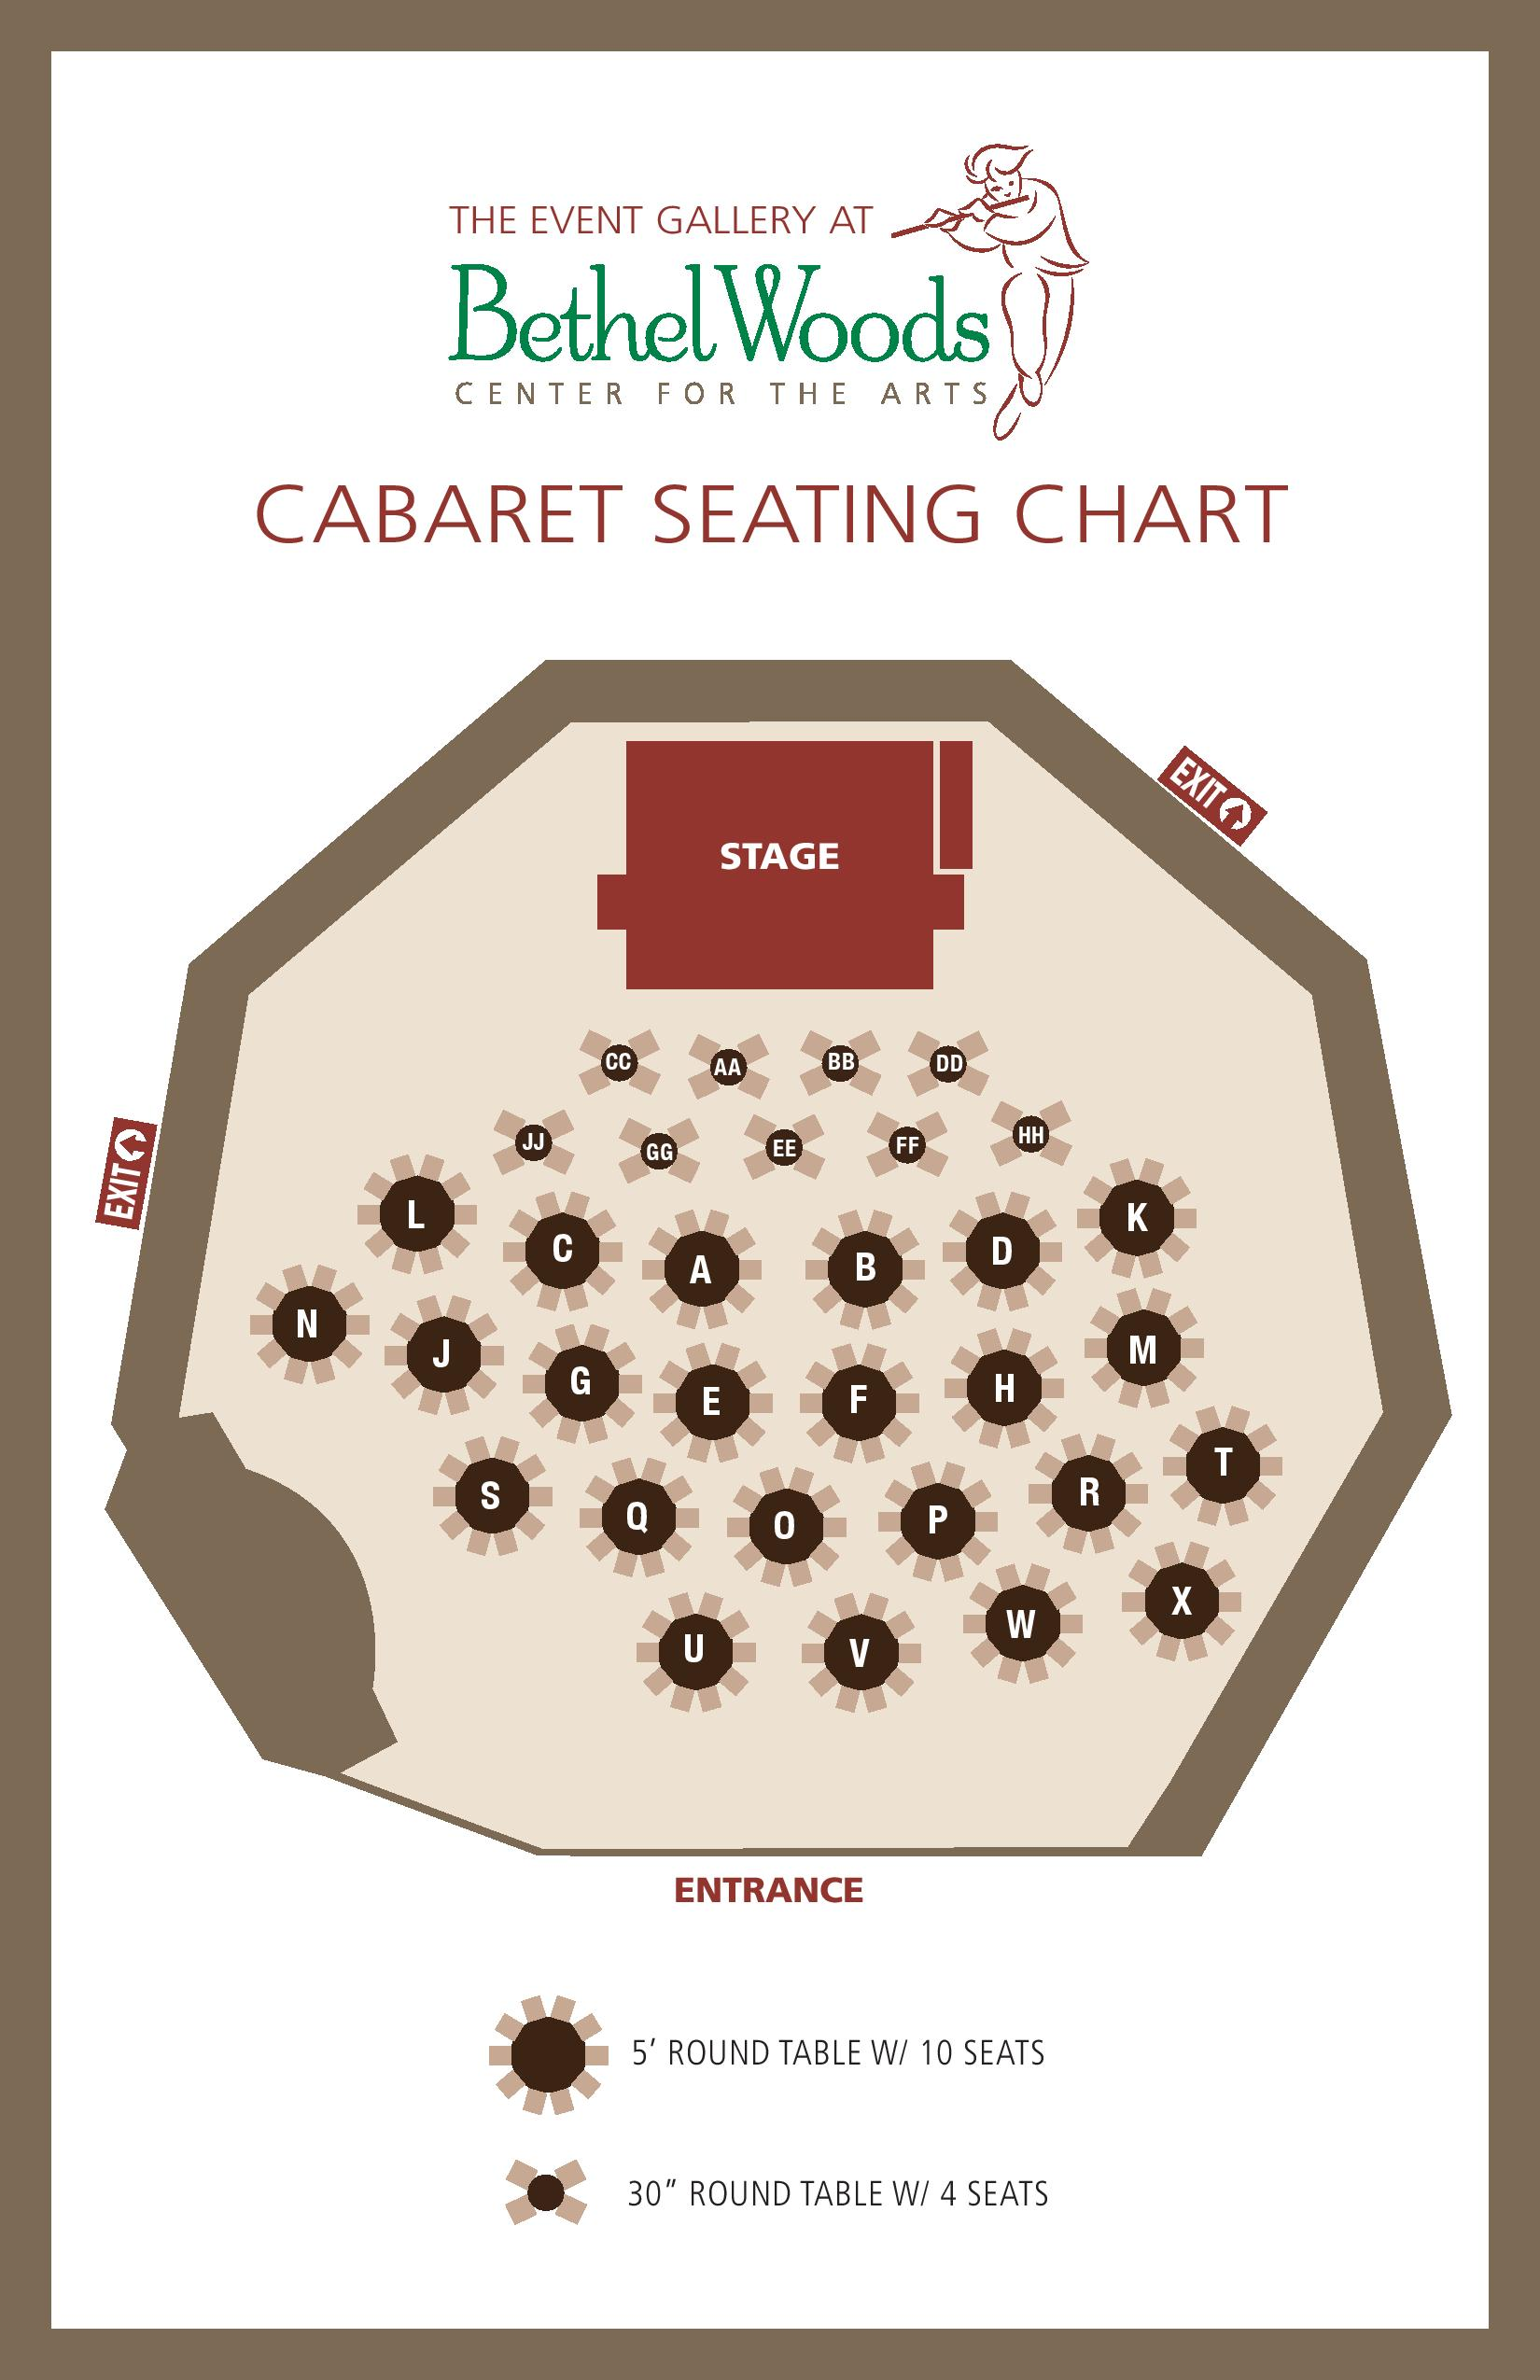 Carabet event seating chart at Bethel Woods